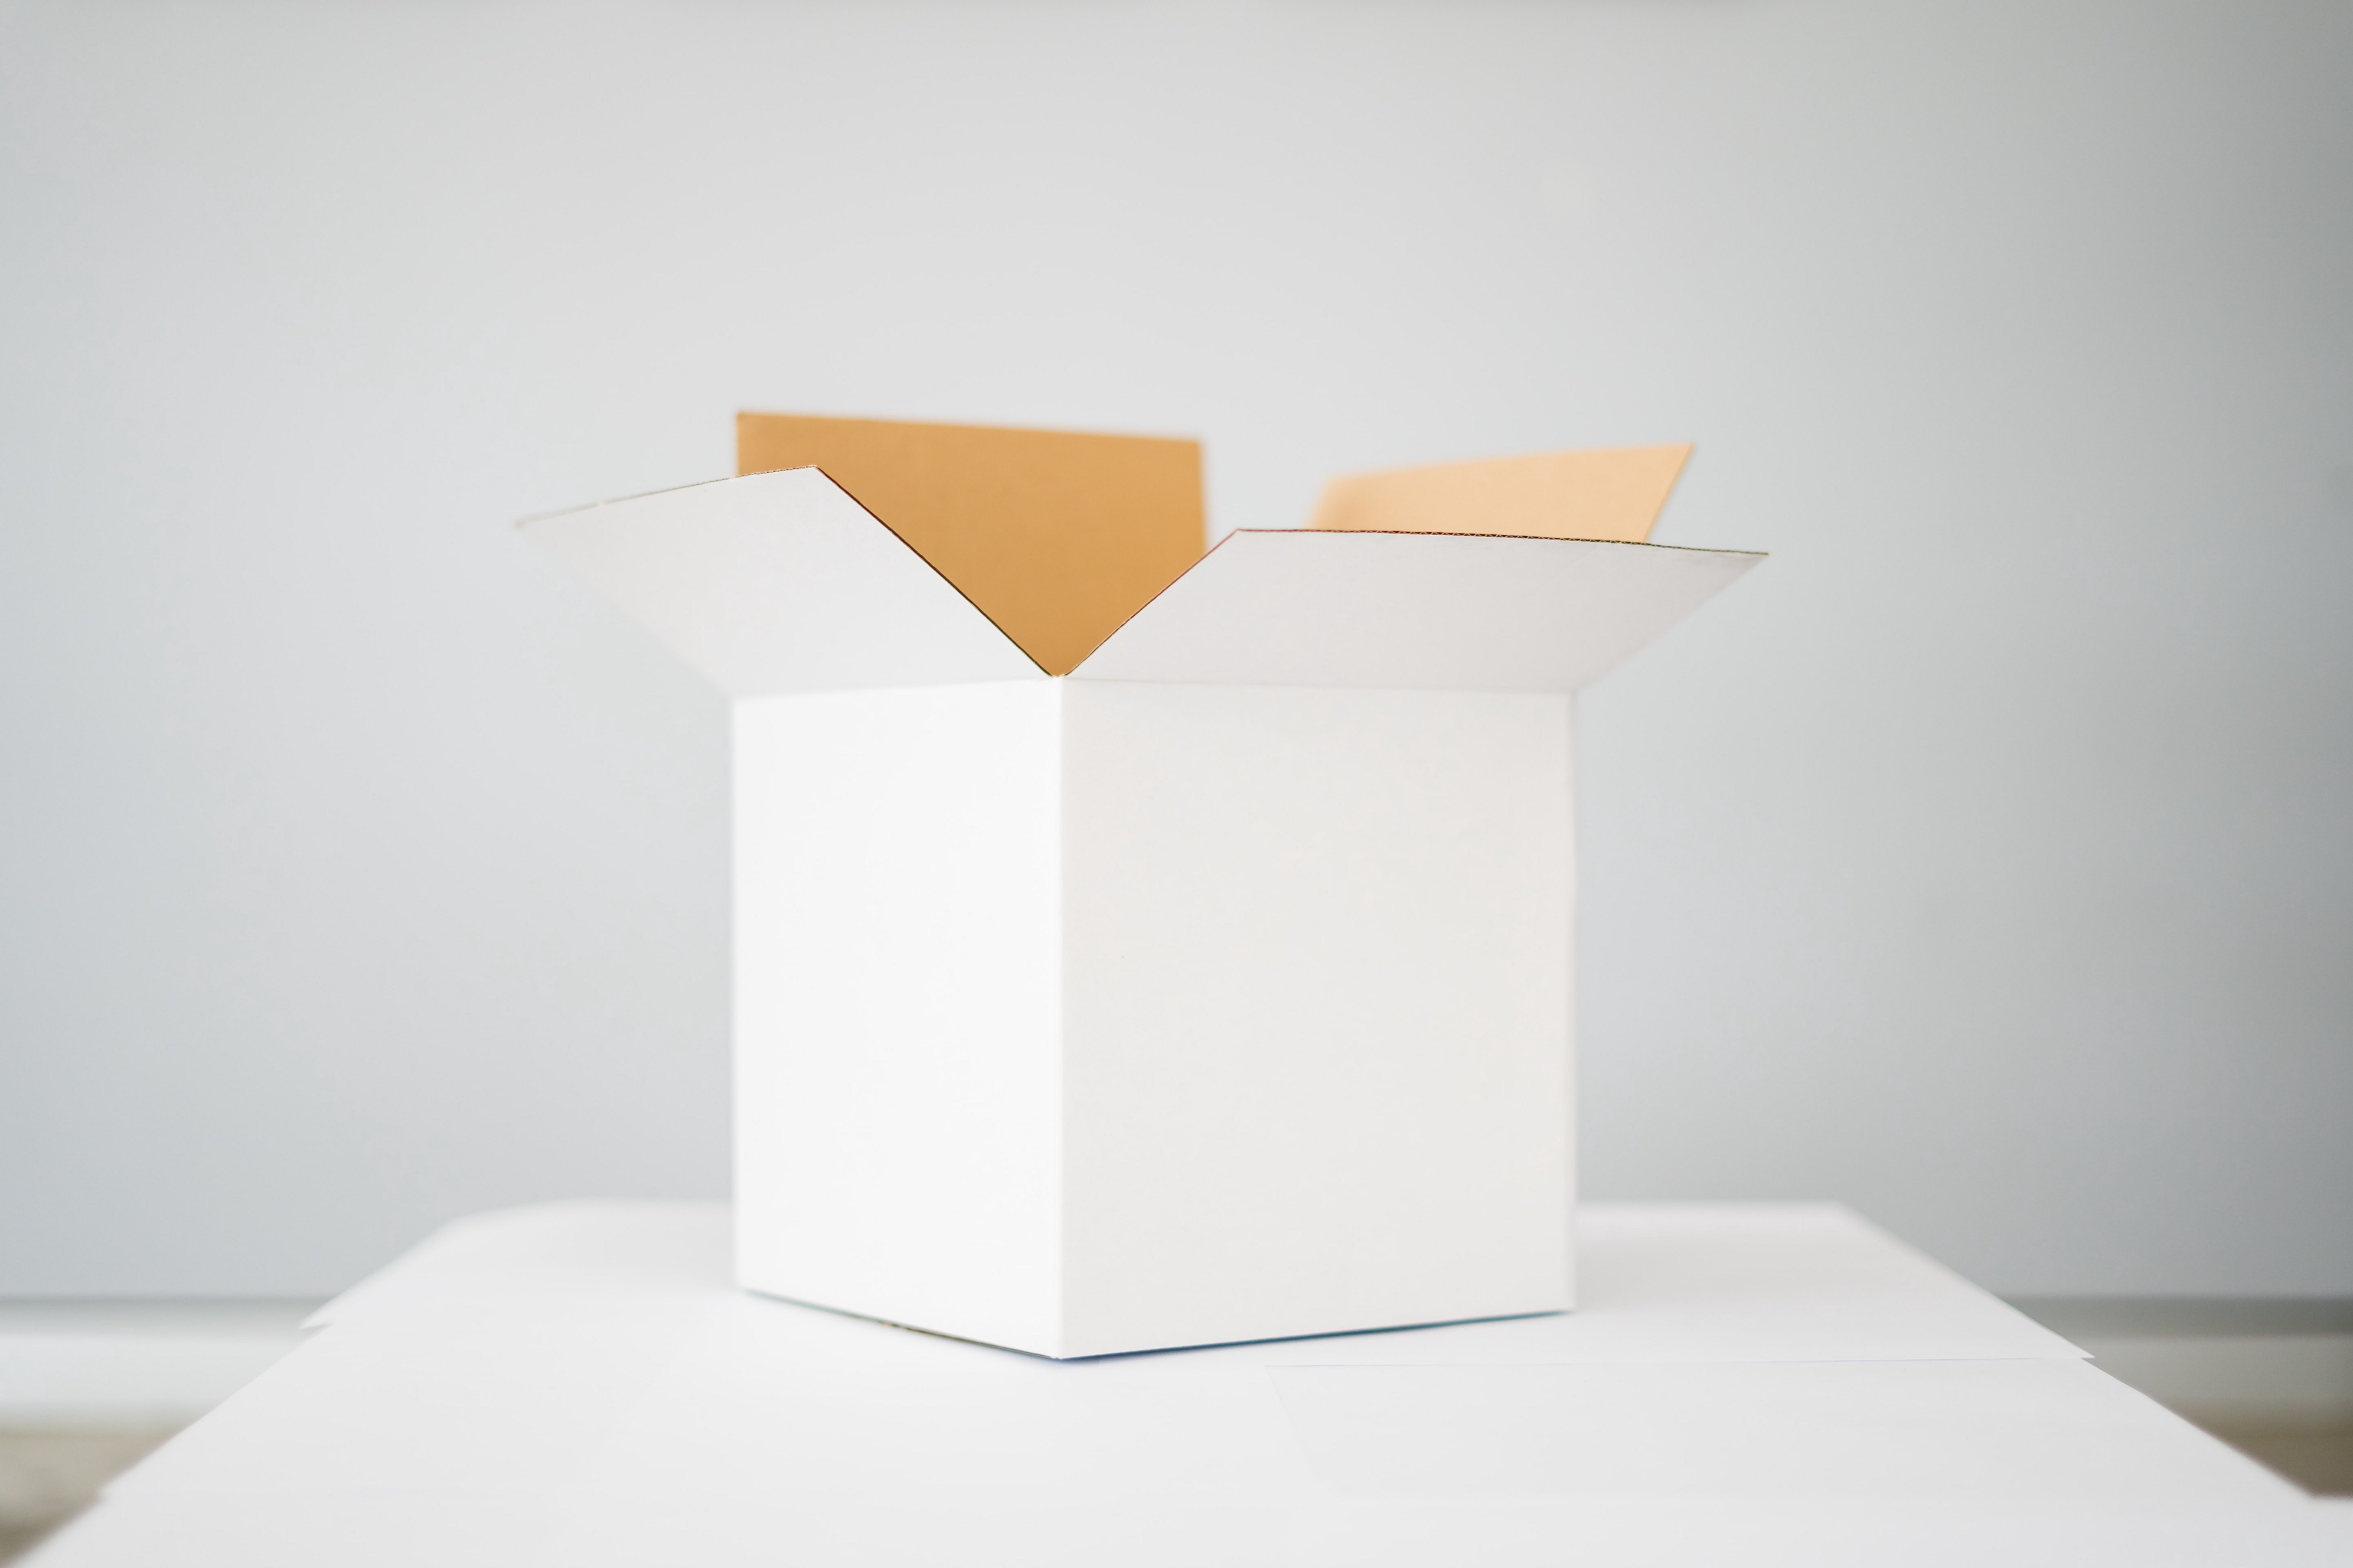 An open, white box placed on a white table.